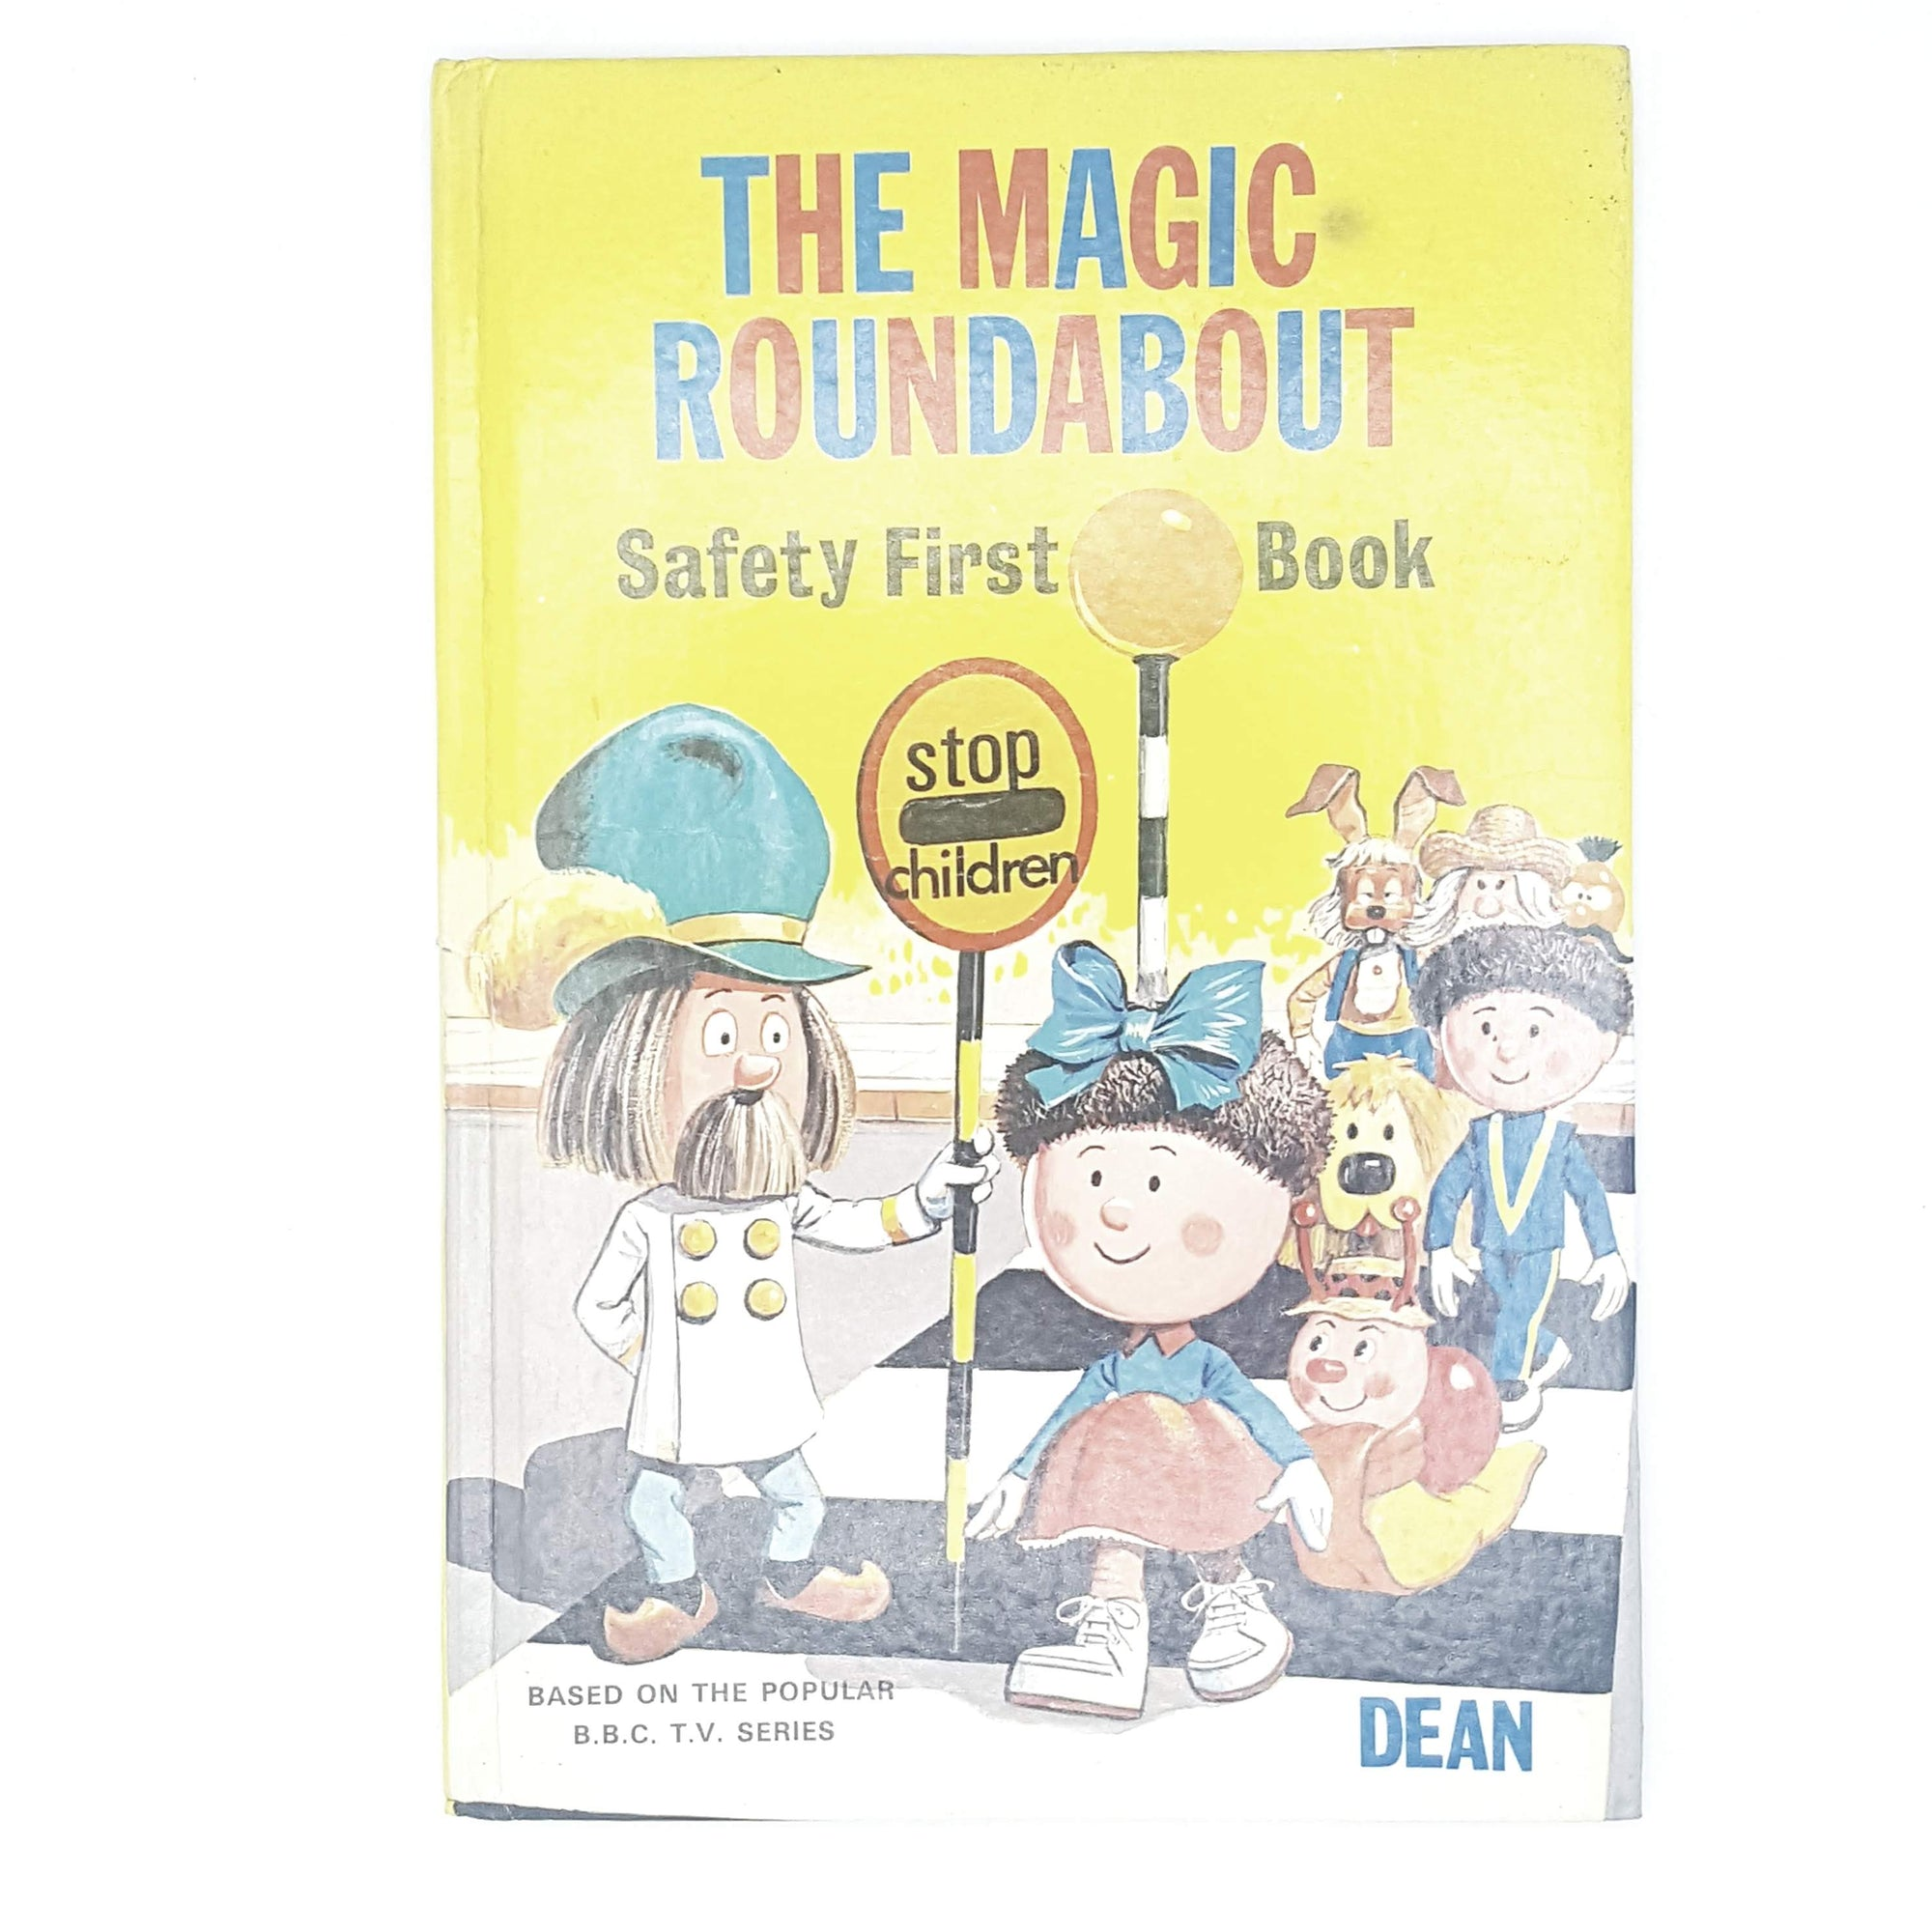 The Magic Roundabout: Safety First Book 1971